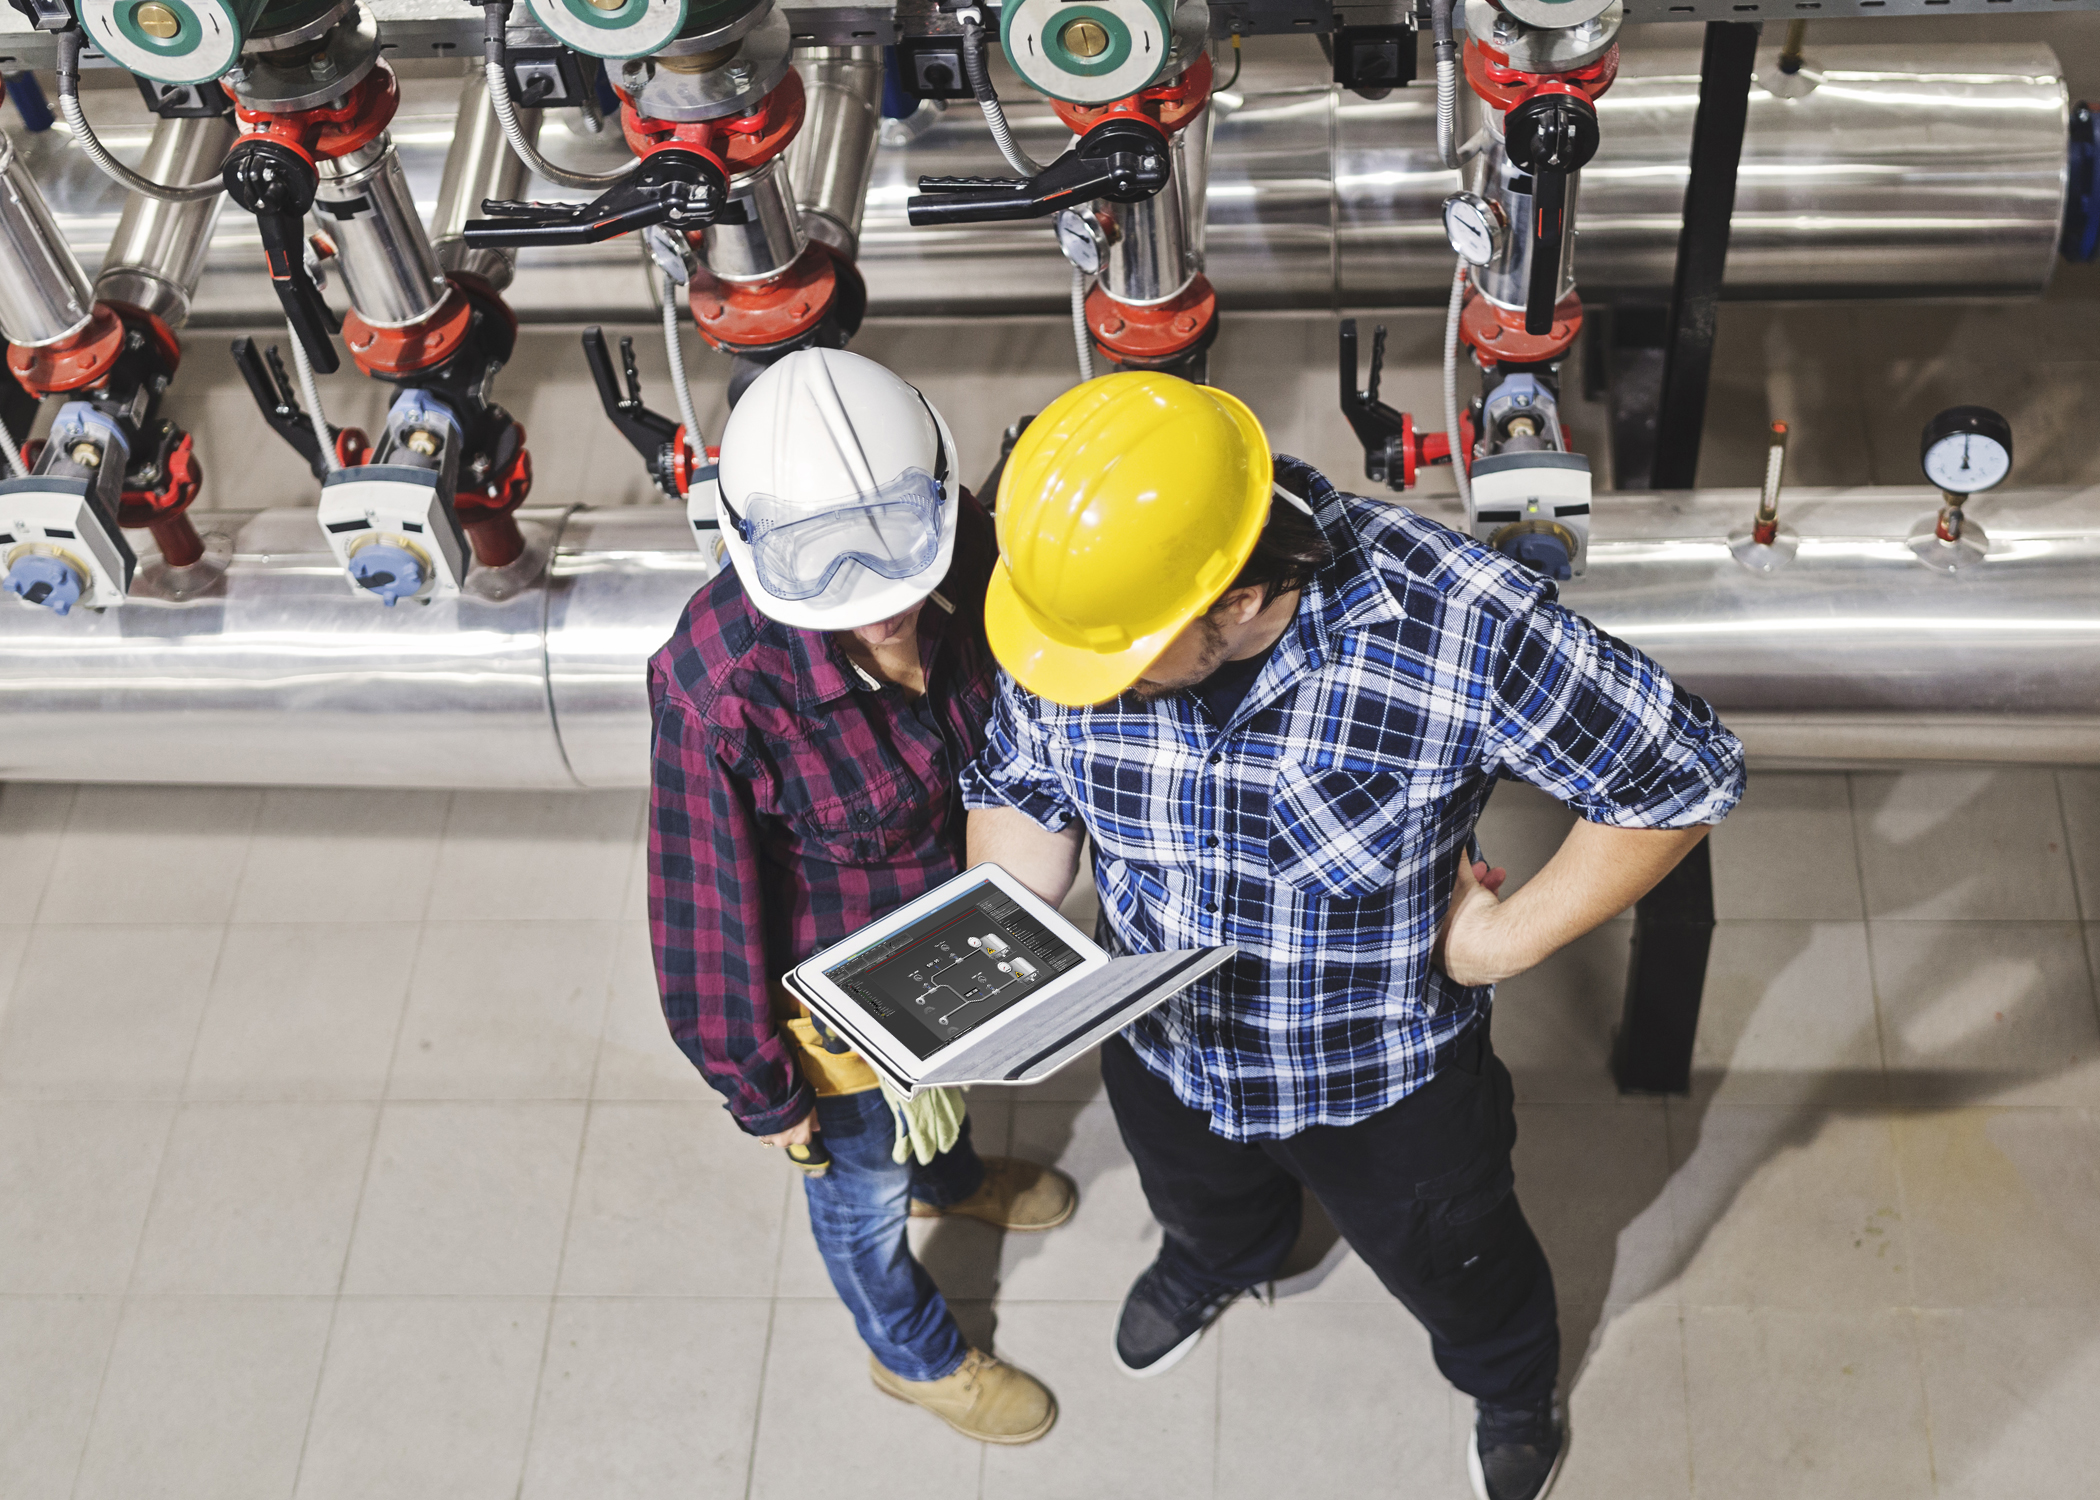 Smartphones changing the face of industrial control